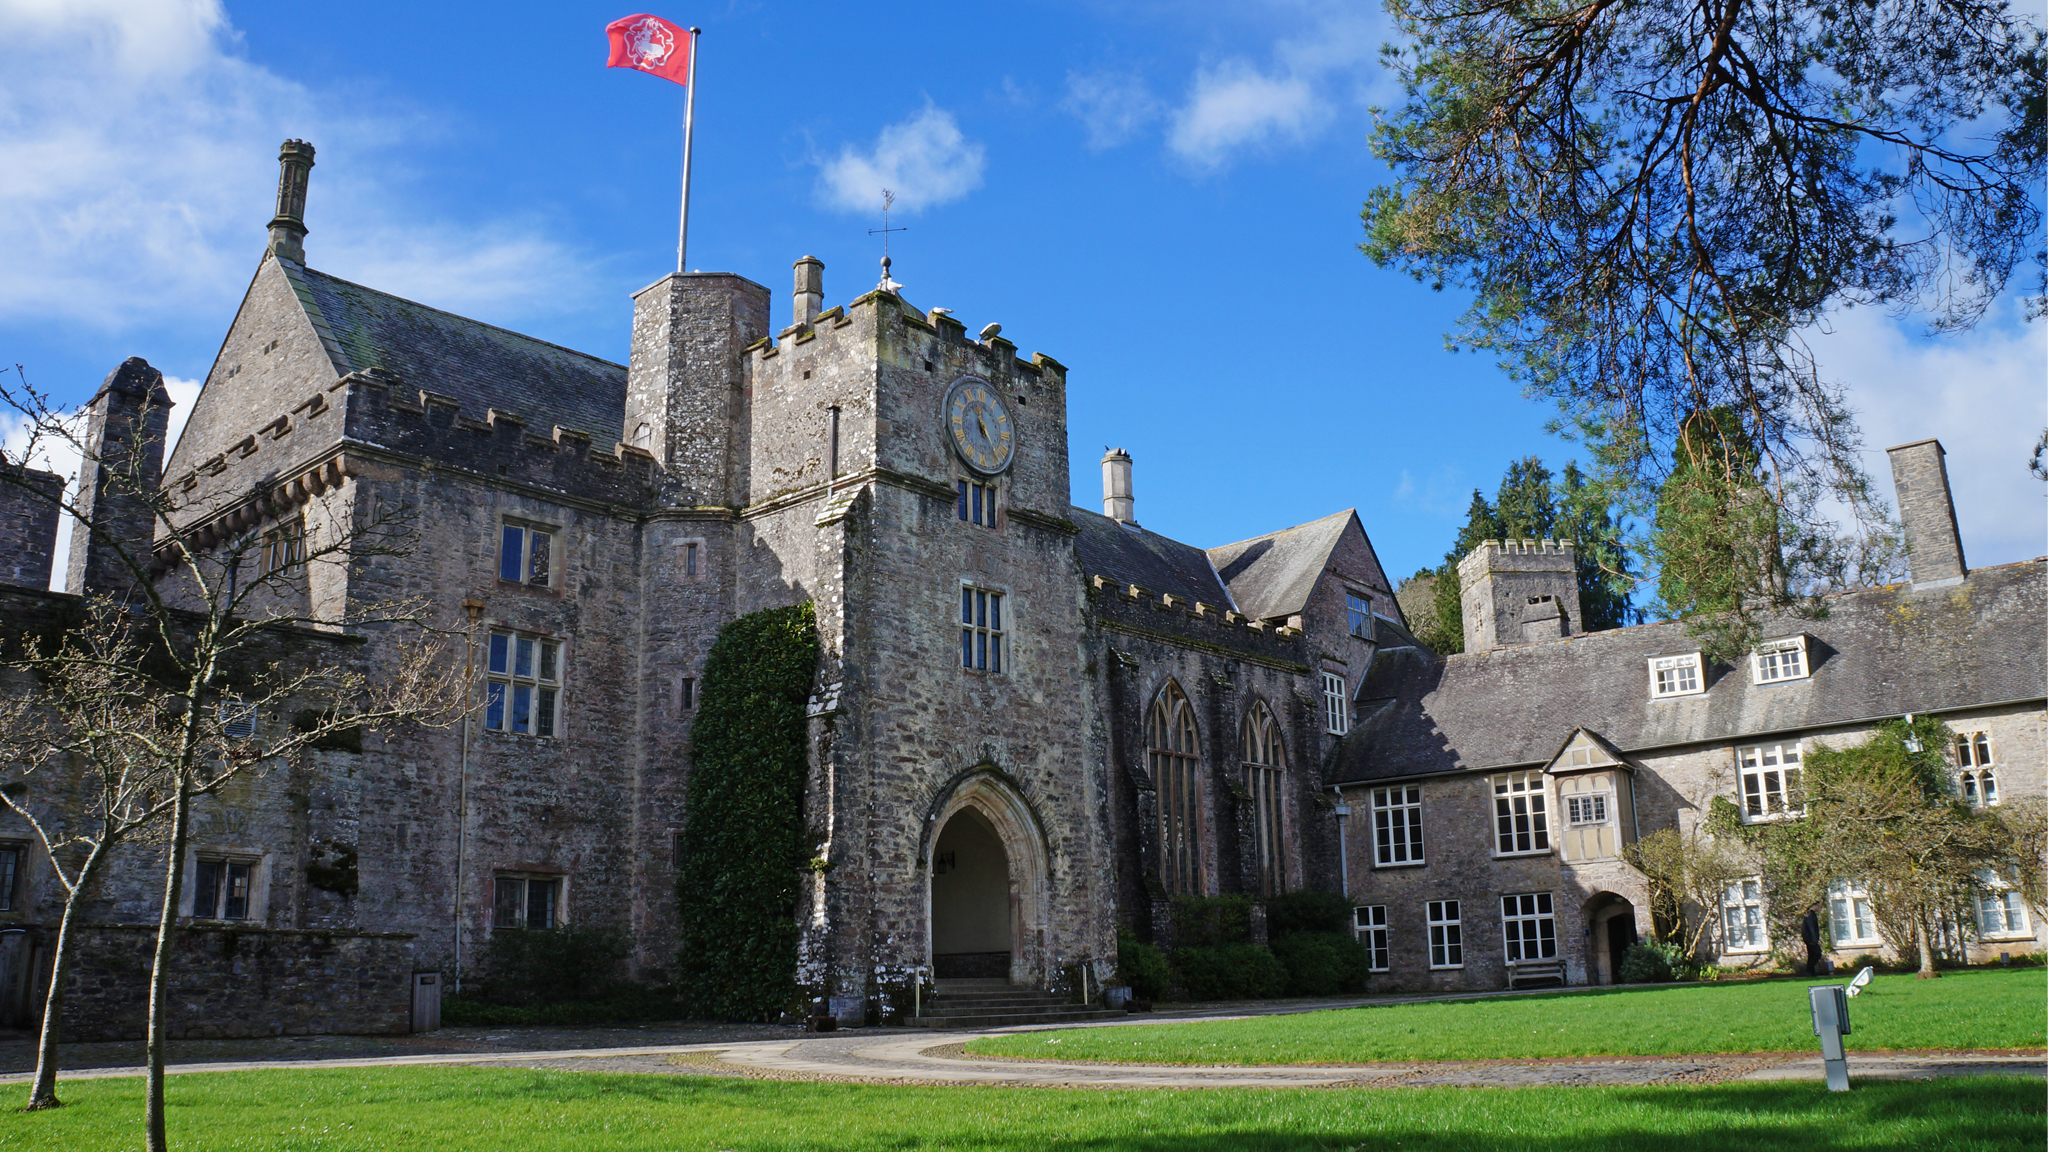 dartington-hall-exterior